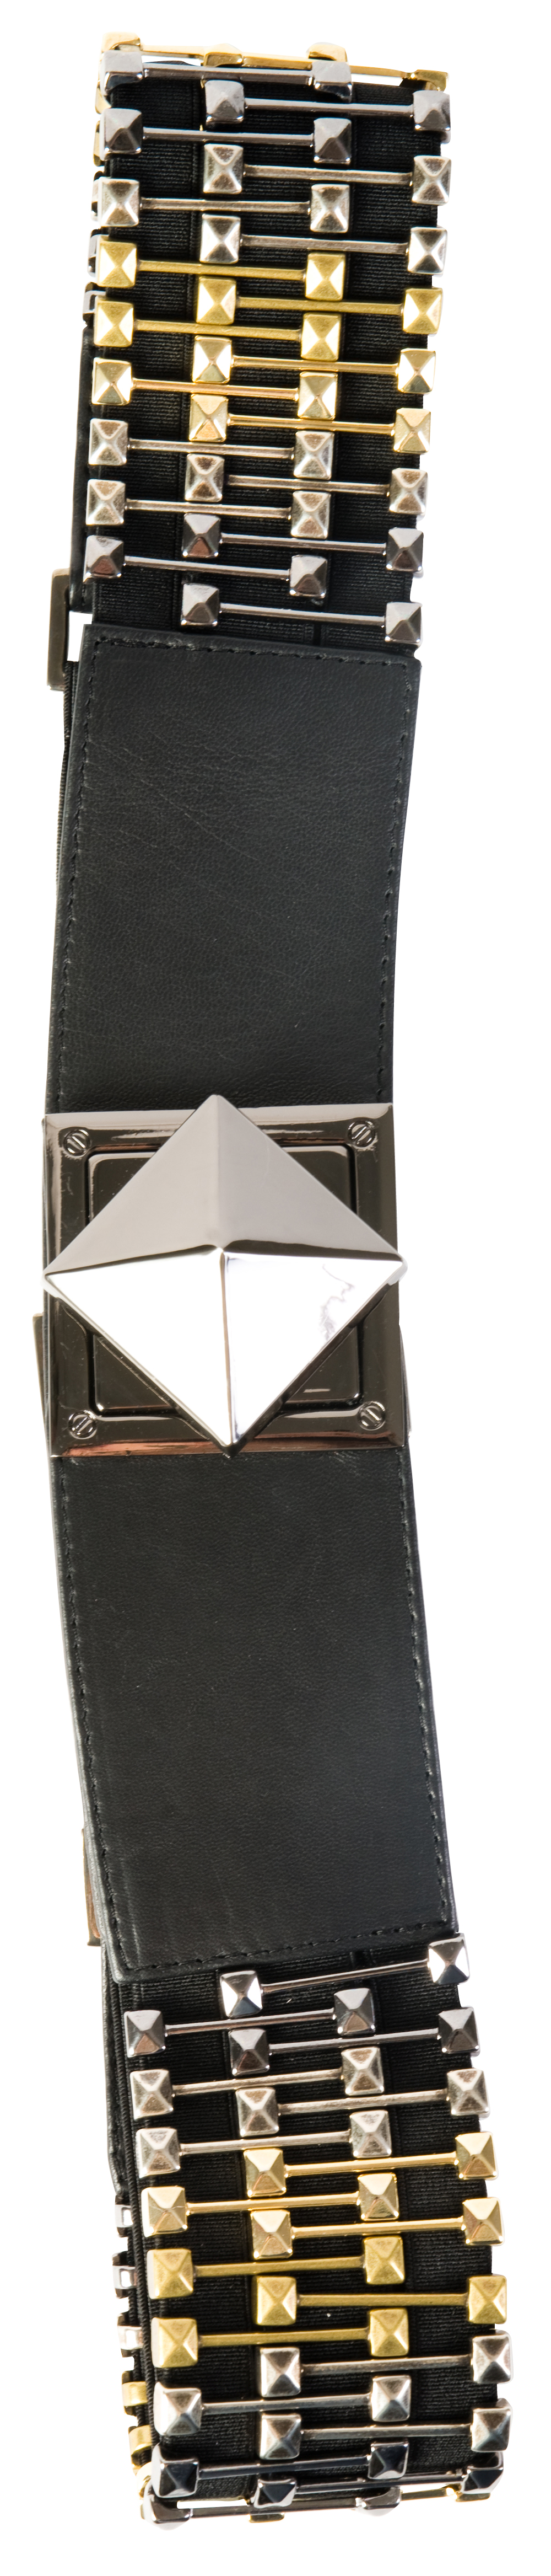 Suzi Roher stretch leather belt with gold and silver hardware and a stud closure, $429 at Gwynn's of Mount Pleasant